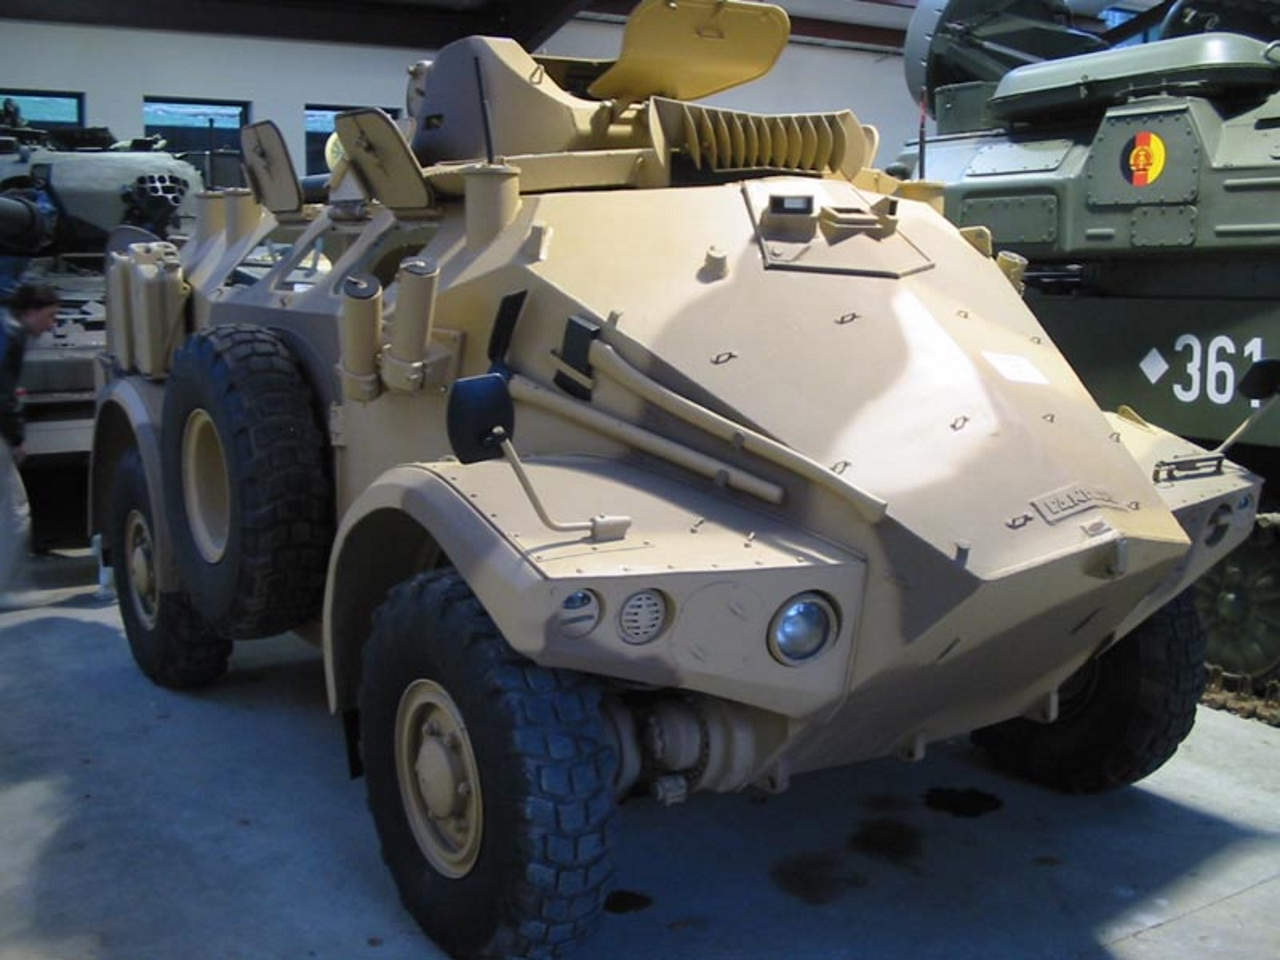 Panhard M3 VTT with TL-2i turret